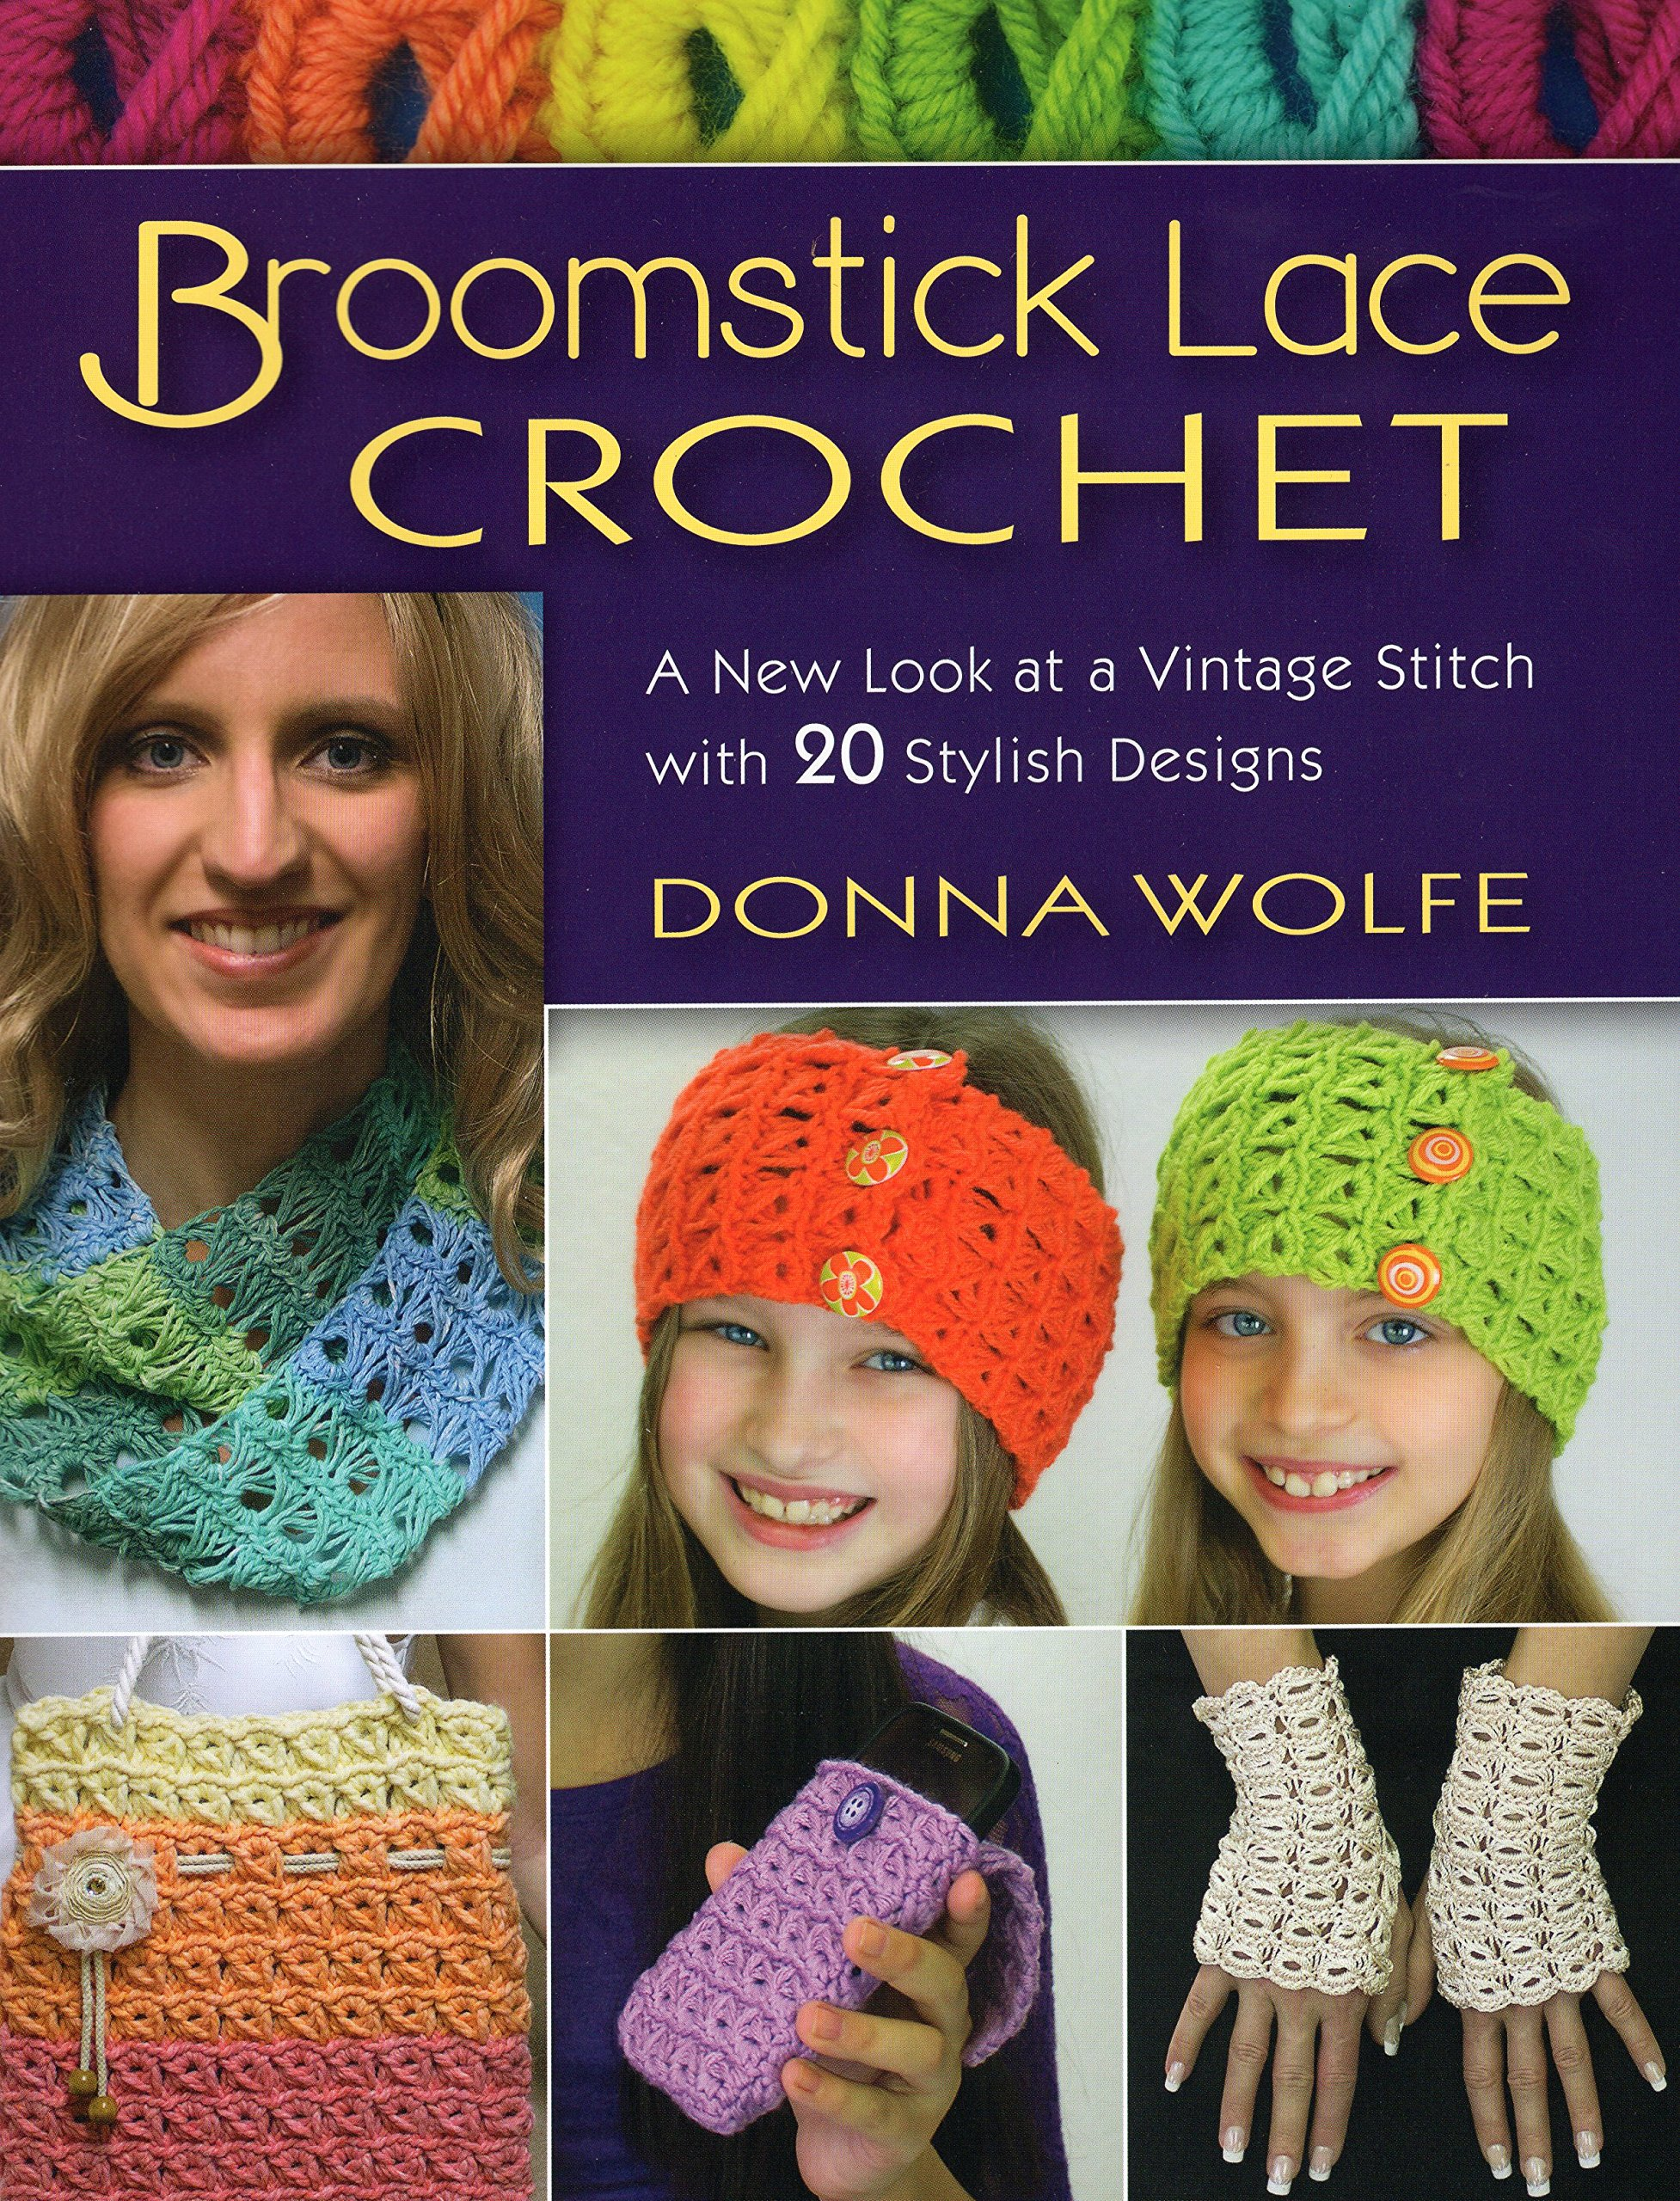 Broomstick Lace Crochet: A New Look at a Vintage Stitch, with 20 ...